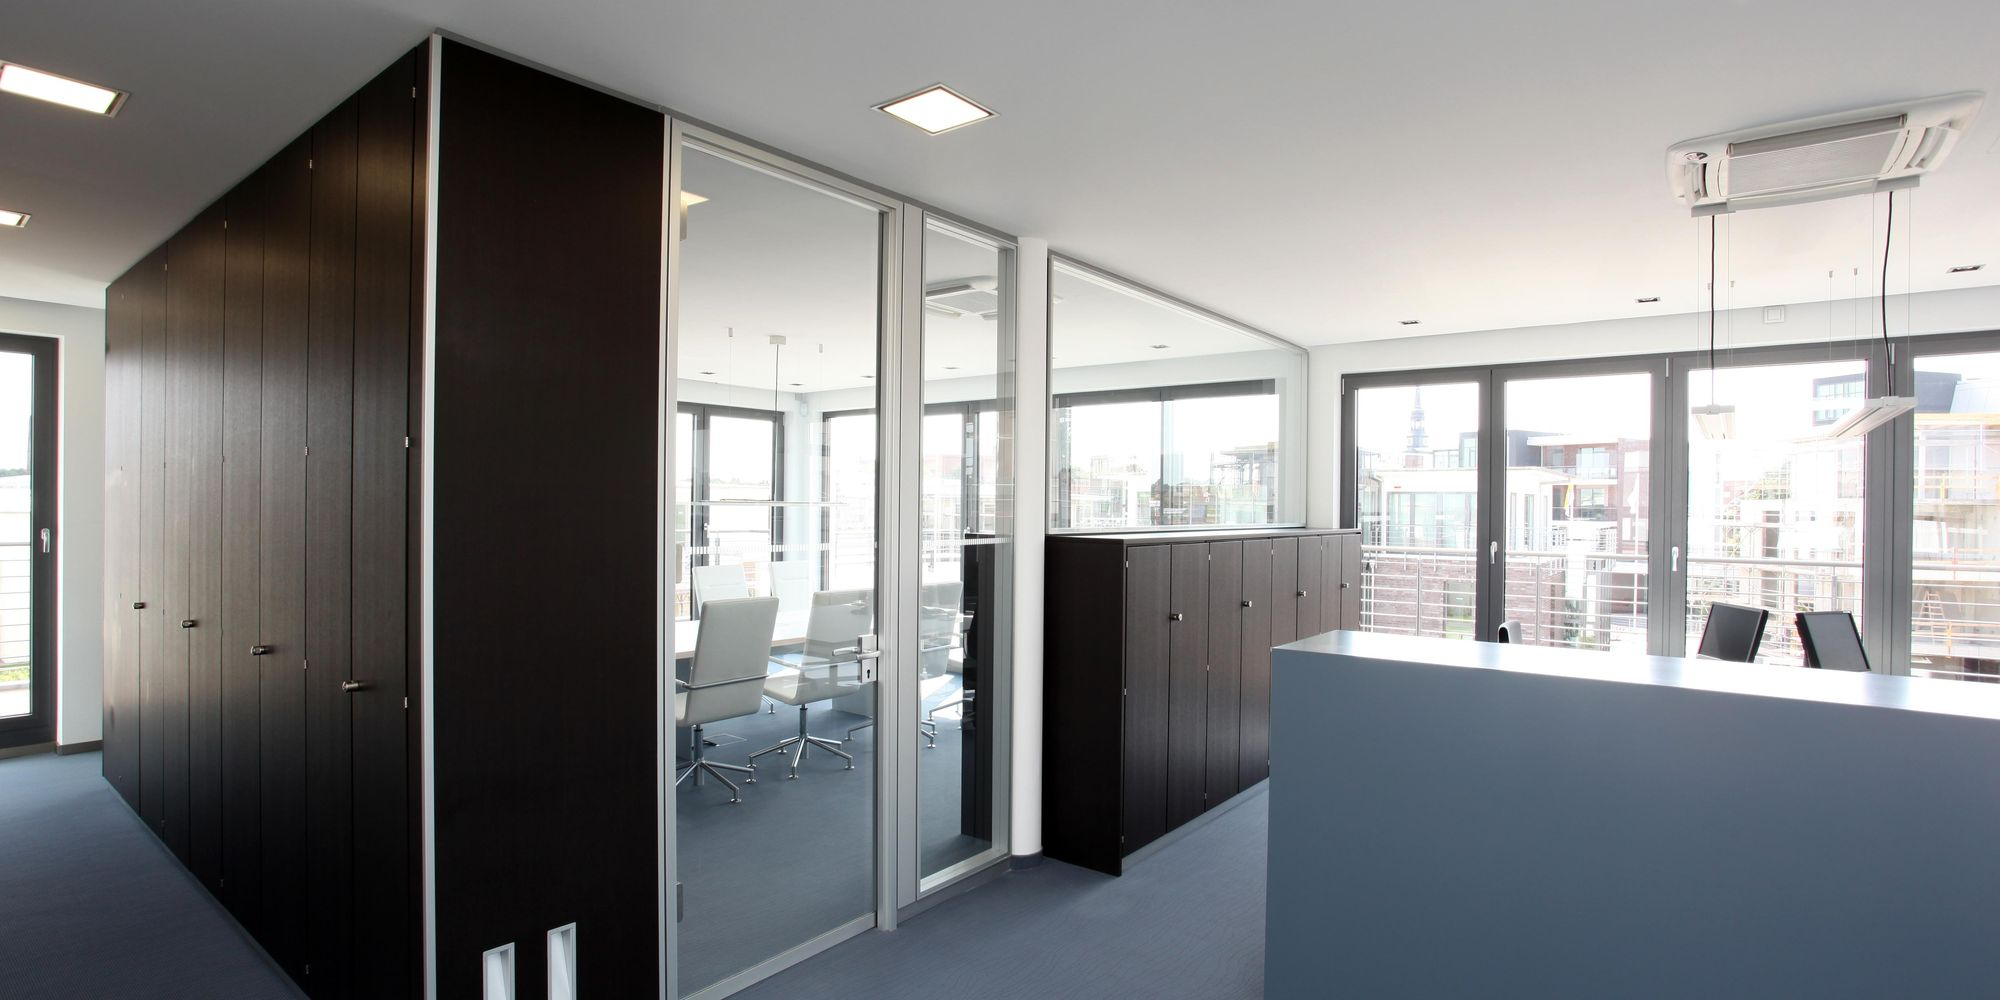 Flexible storage system, full-height or with balustrade glazing